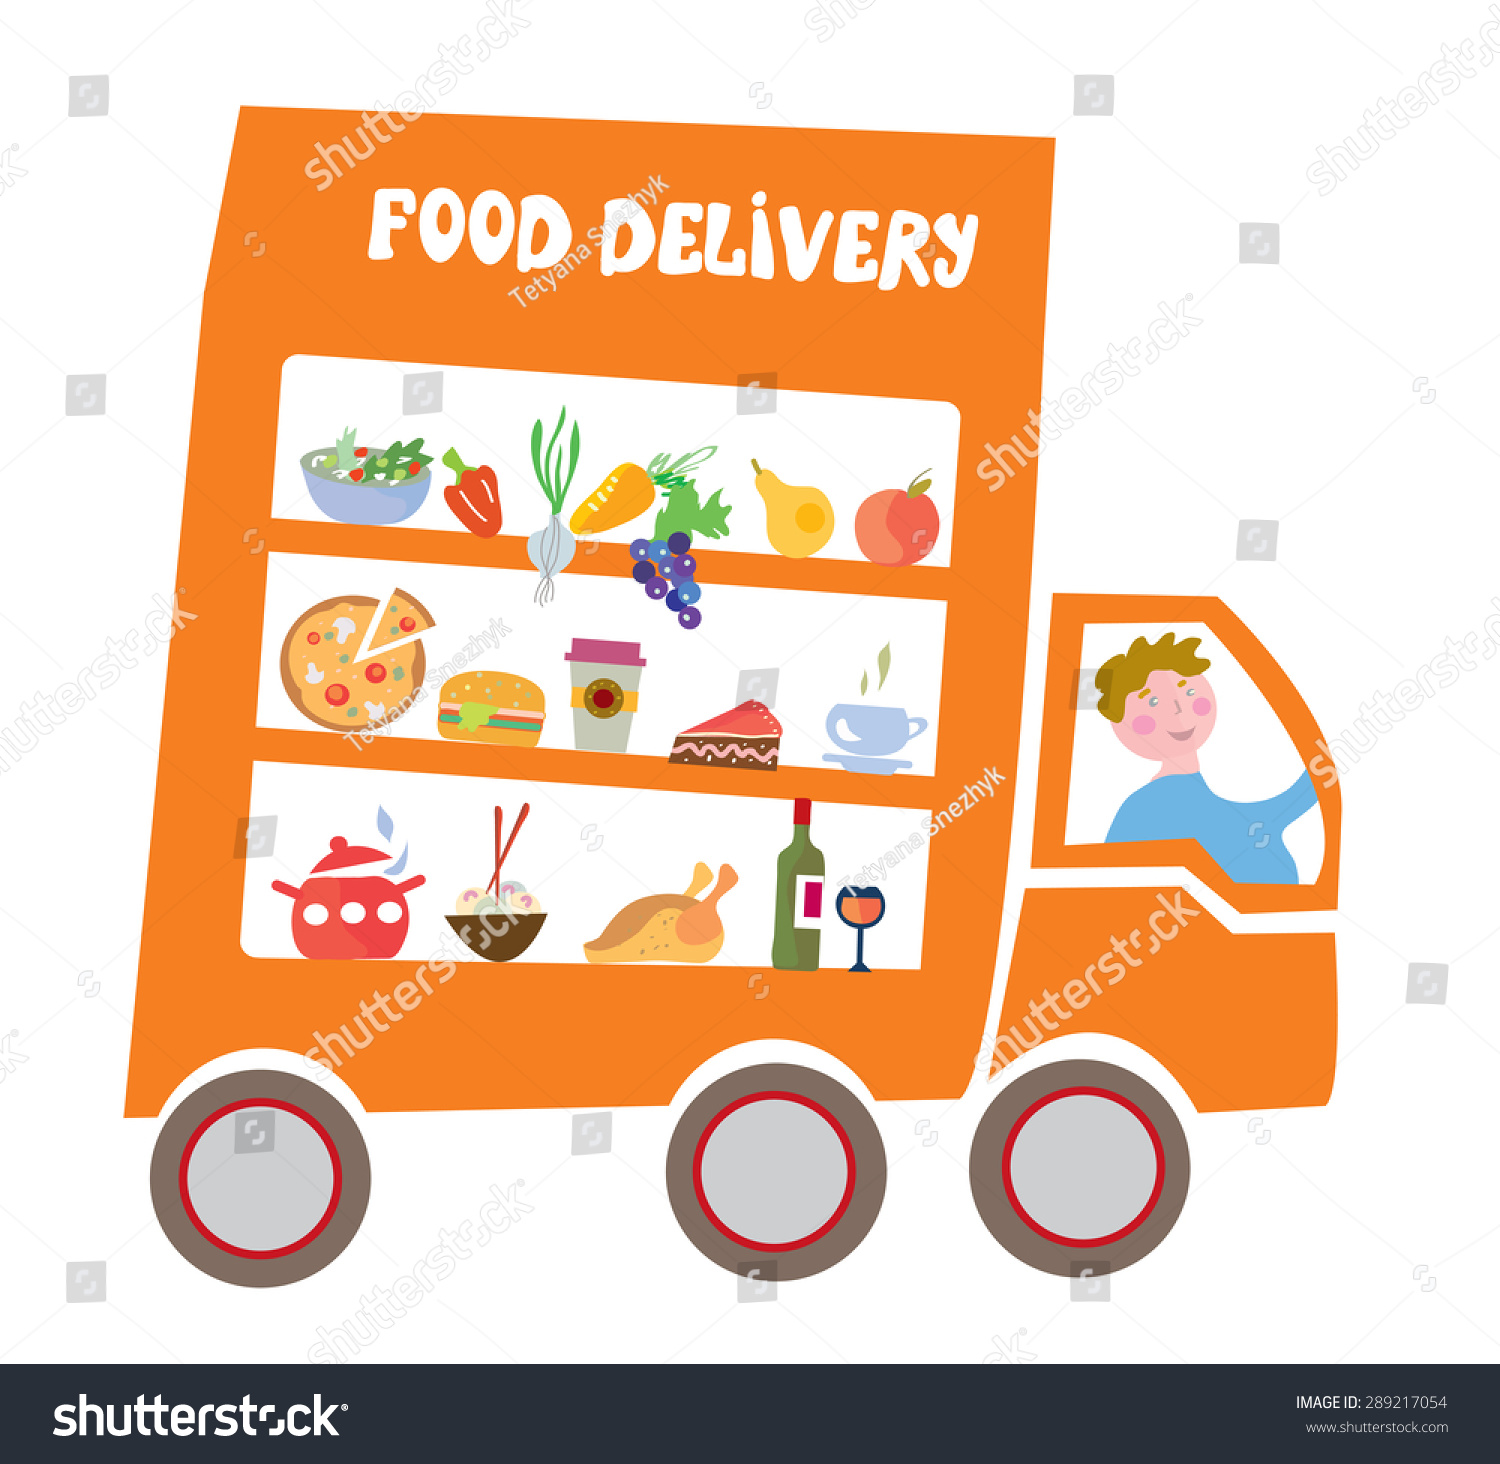 Food delivery cartoon  with track and Stock Photo